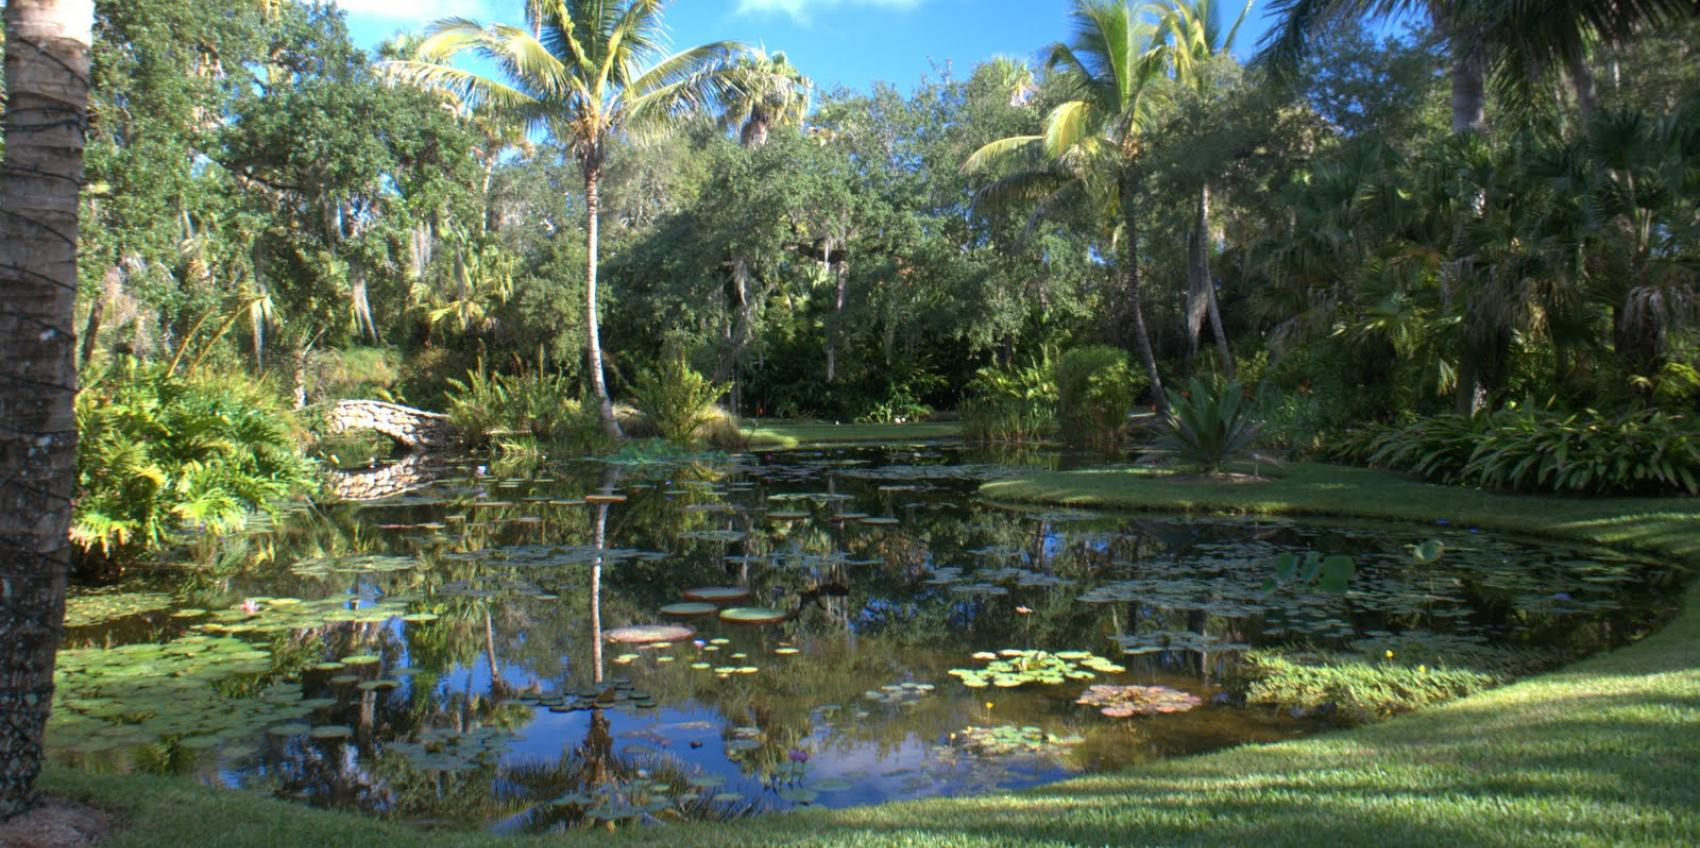 Merveilleux Come Discover One Of Floridau0027s Oldest And Most Treasured Natural  Attractions, McKee Botanical Garden. Located On An 18 Acre Tropical  Hammock, ...